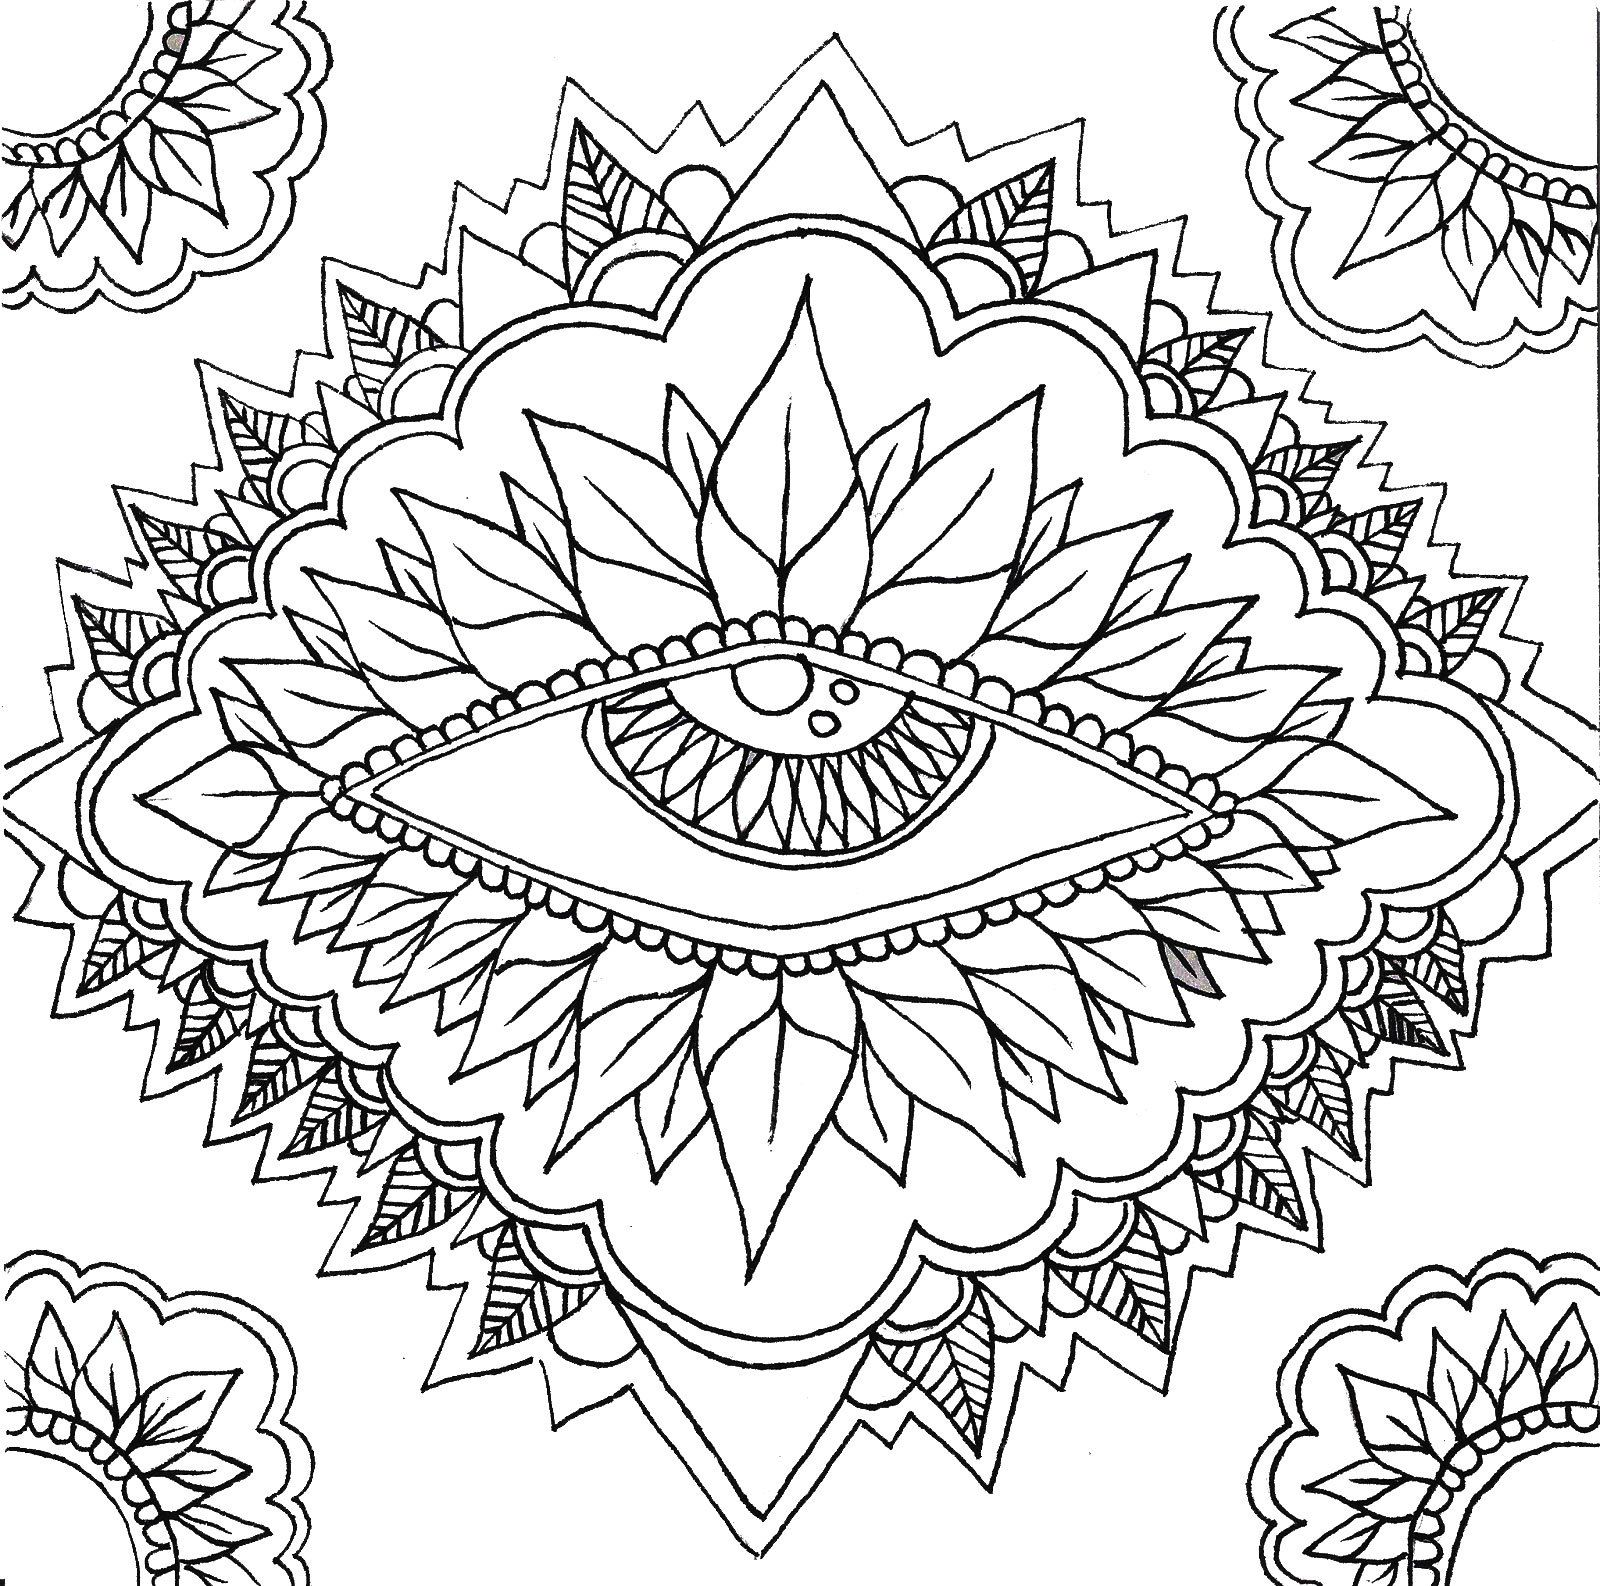 Alod Color Me Coloring Pages Colouring Art Therapy Mindfulness Colouring